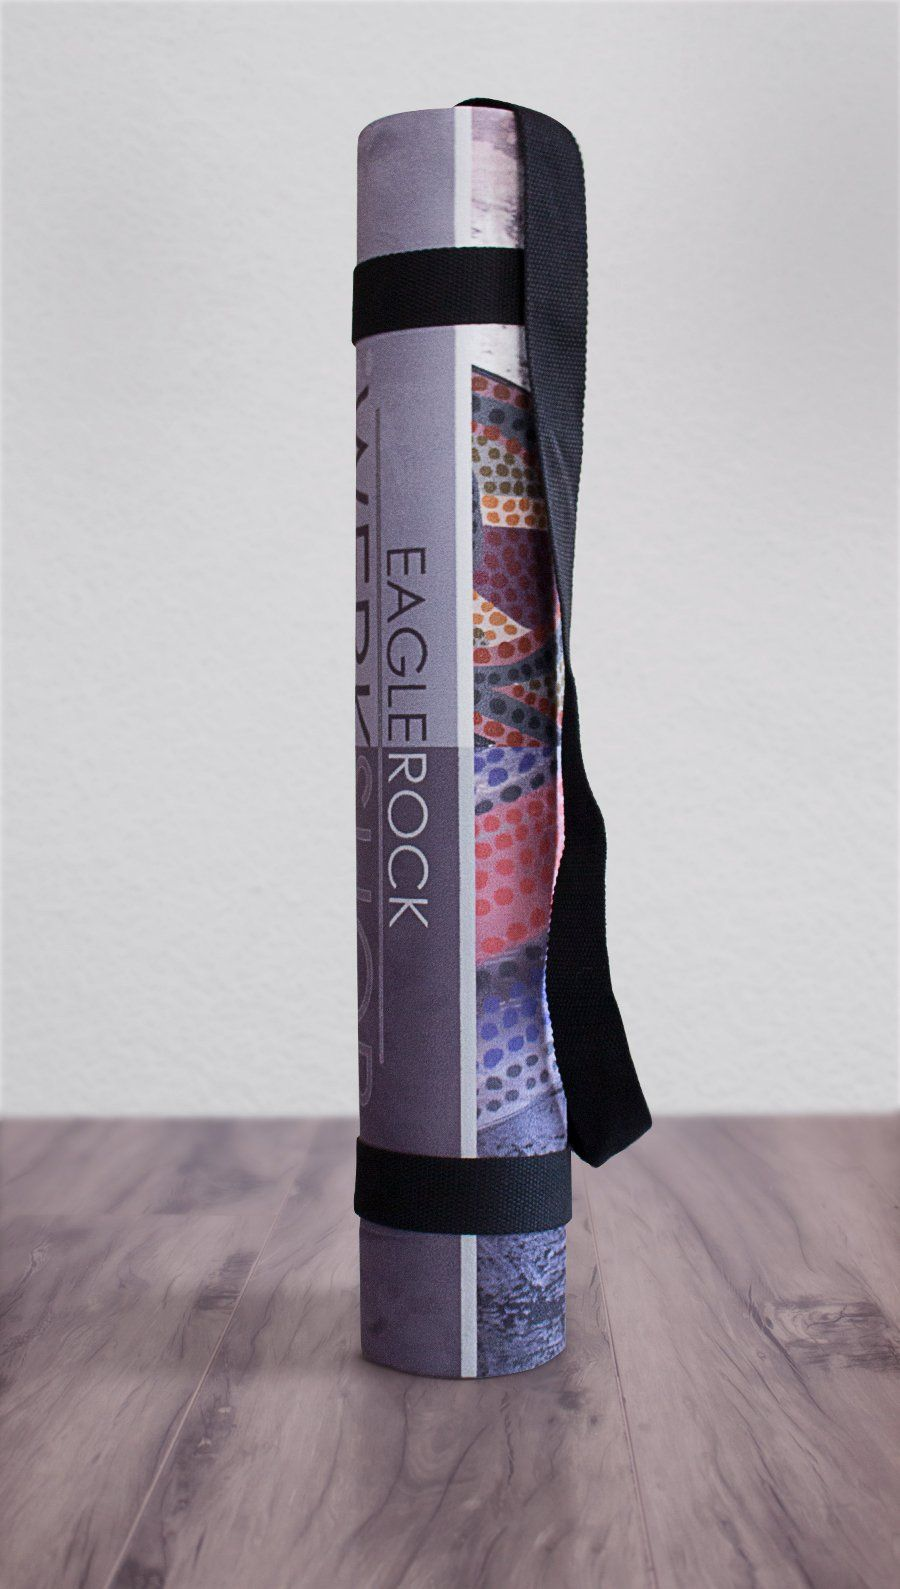 Mashup Fitness/Yoga Mat - Limited Edition